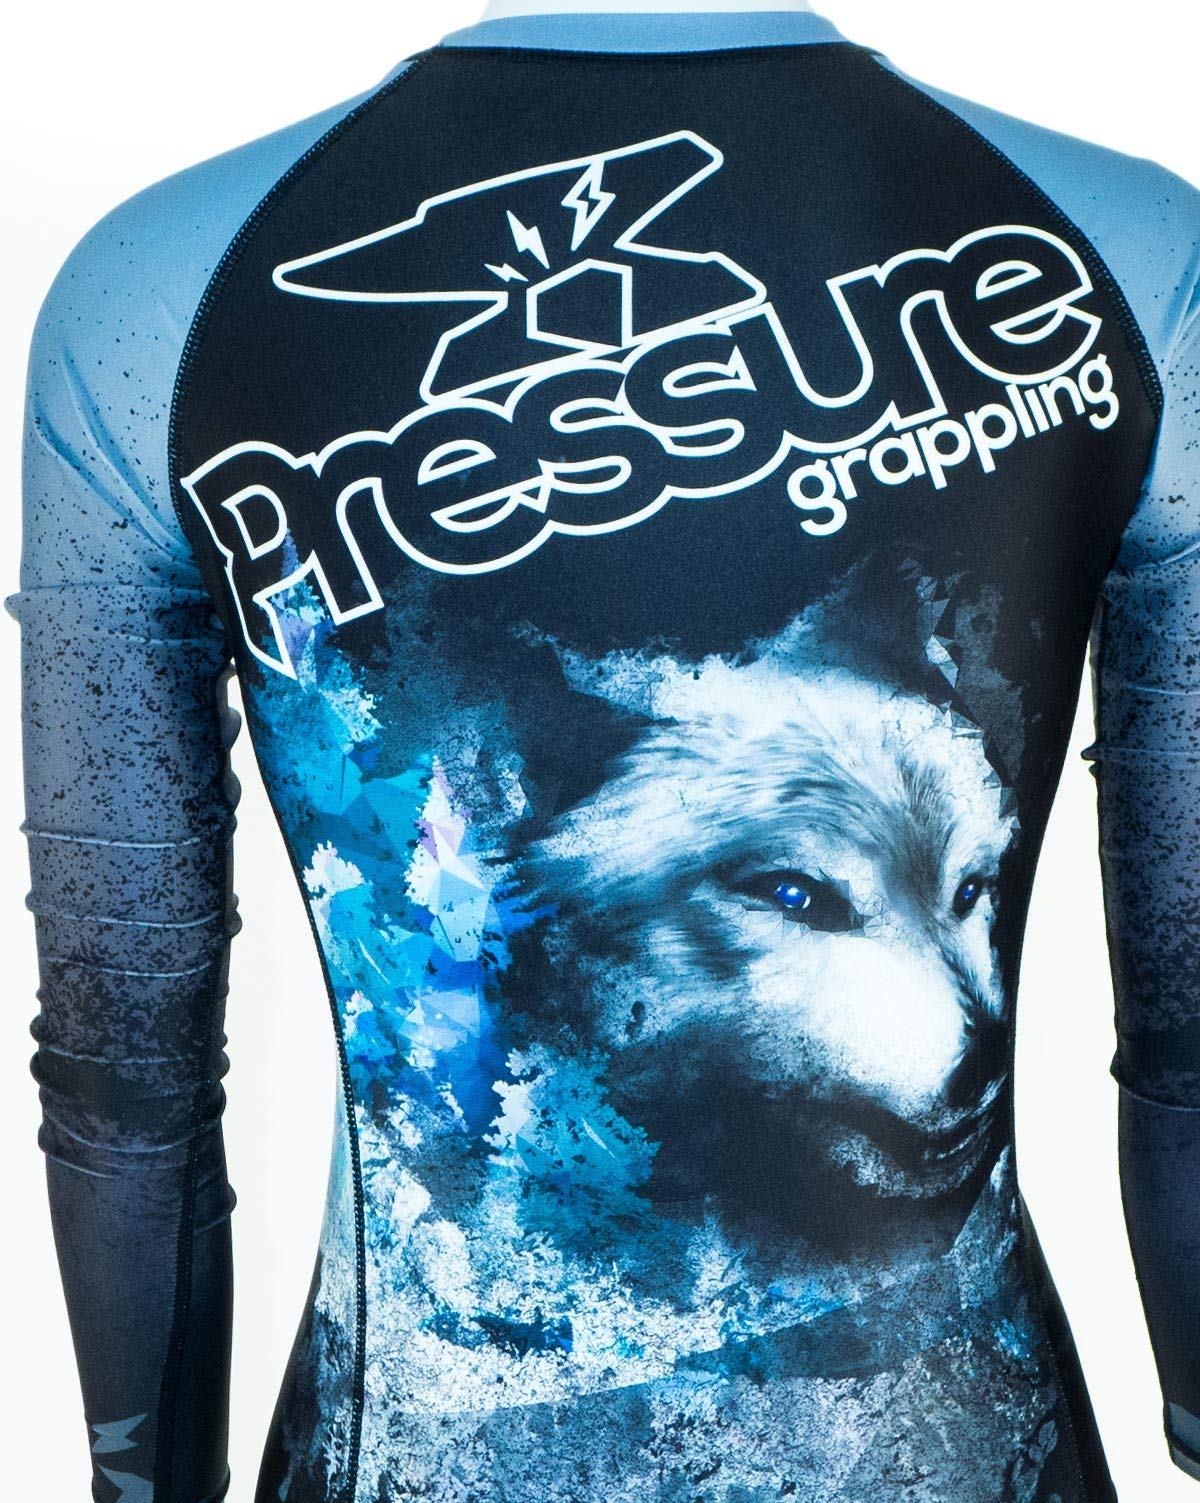 Pressure Grappling Women's Premium BJJ Long Sleeve Rash Guard with Lockdown Band (Volk, Extra Small) by Pressure Grappling